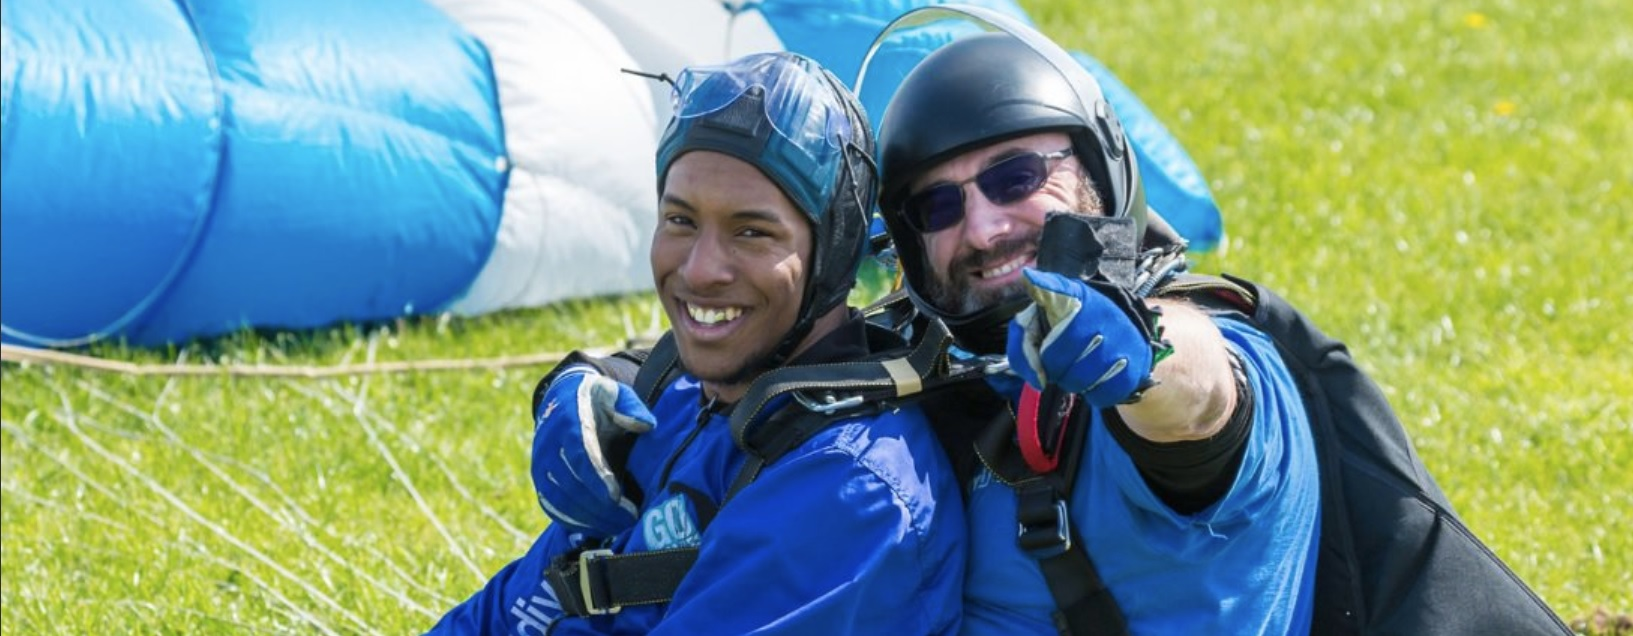 How much is skydiving in the UK? | Tandem Skydiving Costs